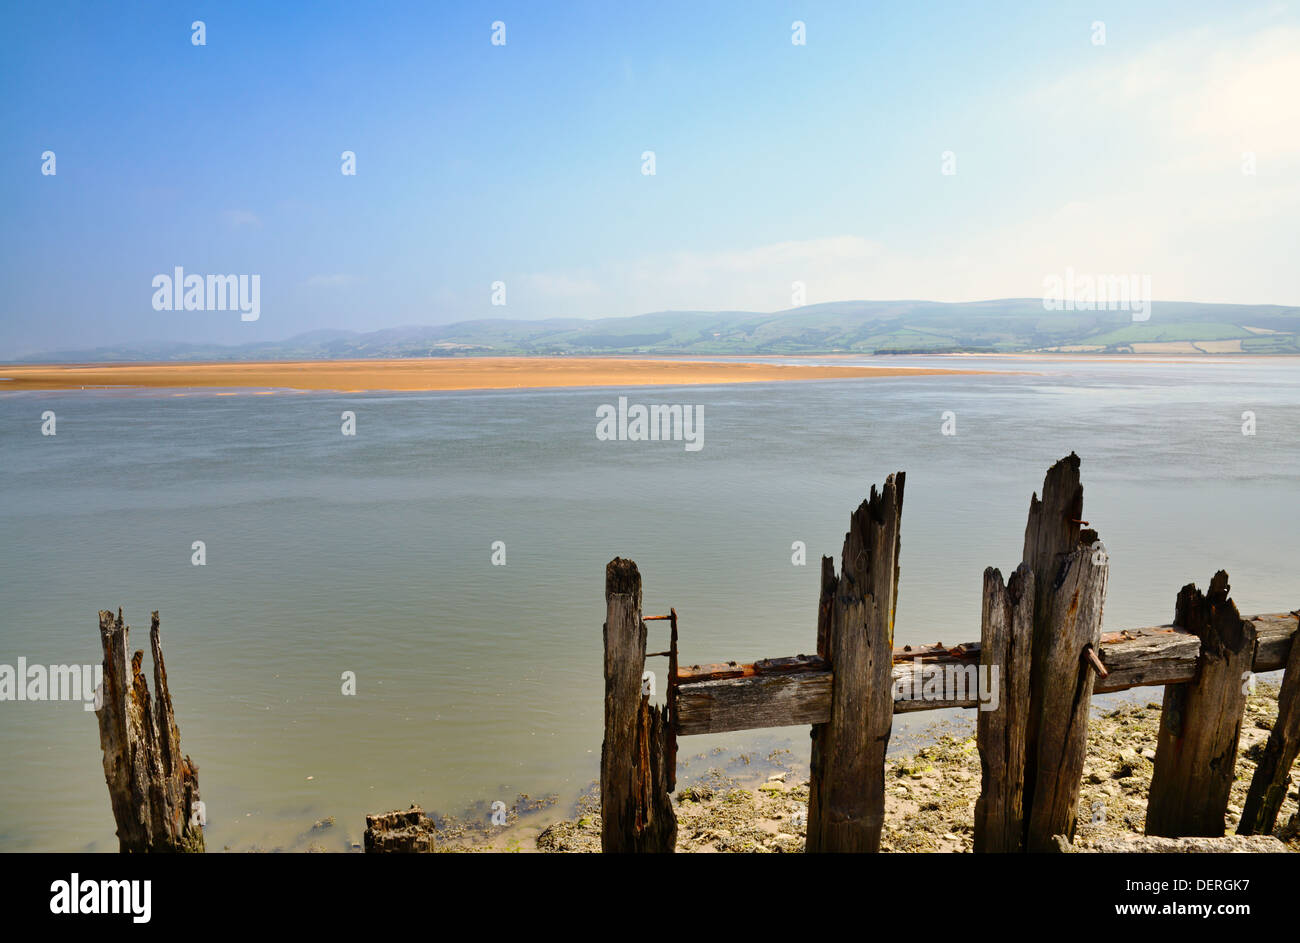 Remains of jagged wooden posts at the edge of Morecambe Bay near Millom - Stock Image